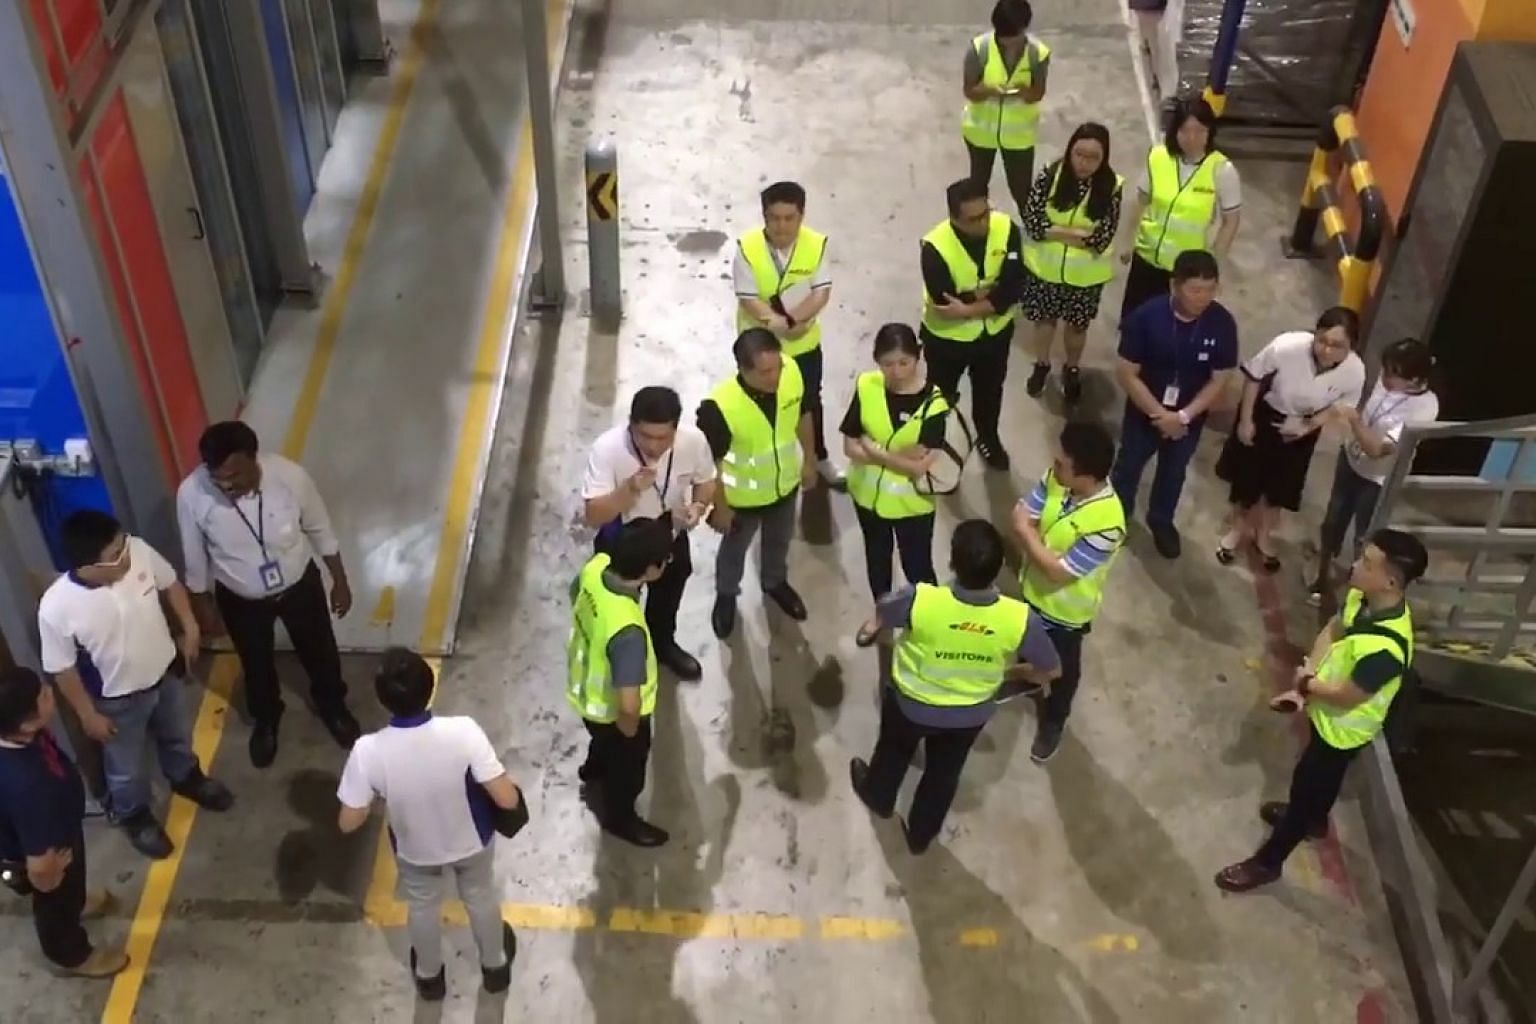 Minister for Trade and Industry Chan Chun Sing tours NTUC FairPrice's Benoi Distribution Centre